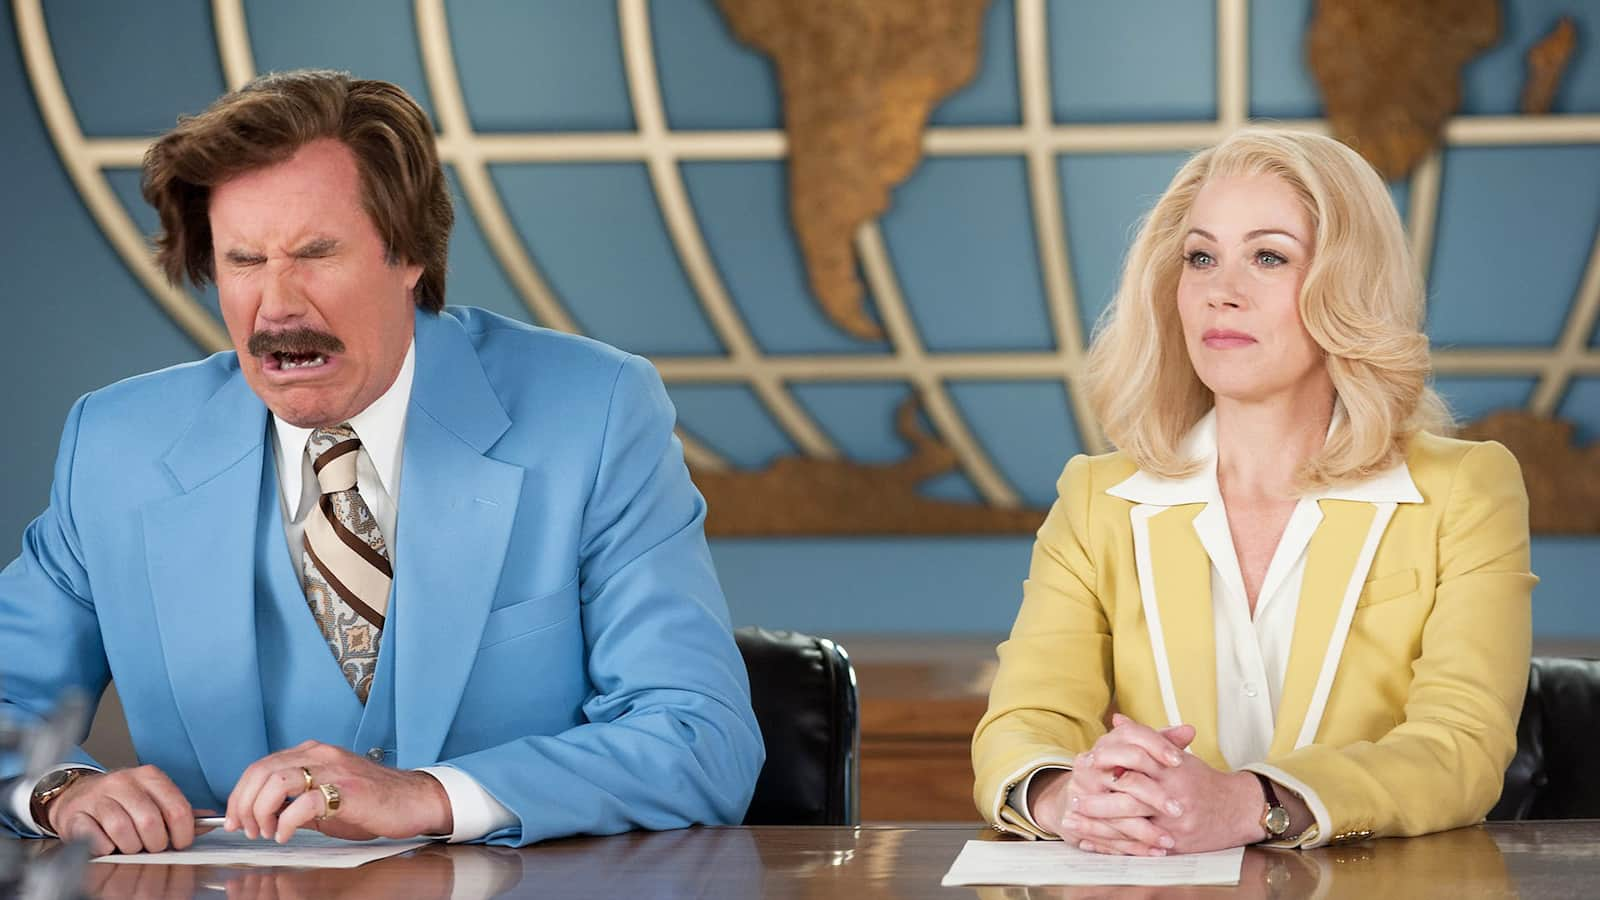 anchorman-2-the-legend-continues-2013